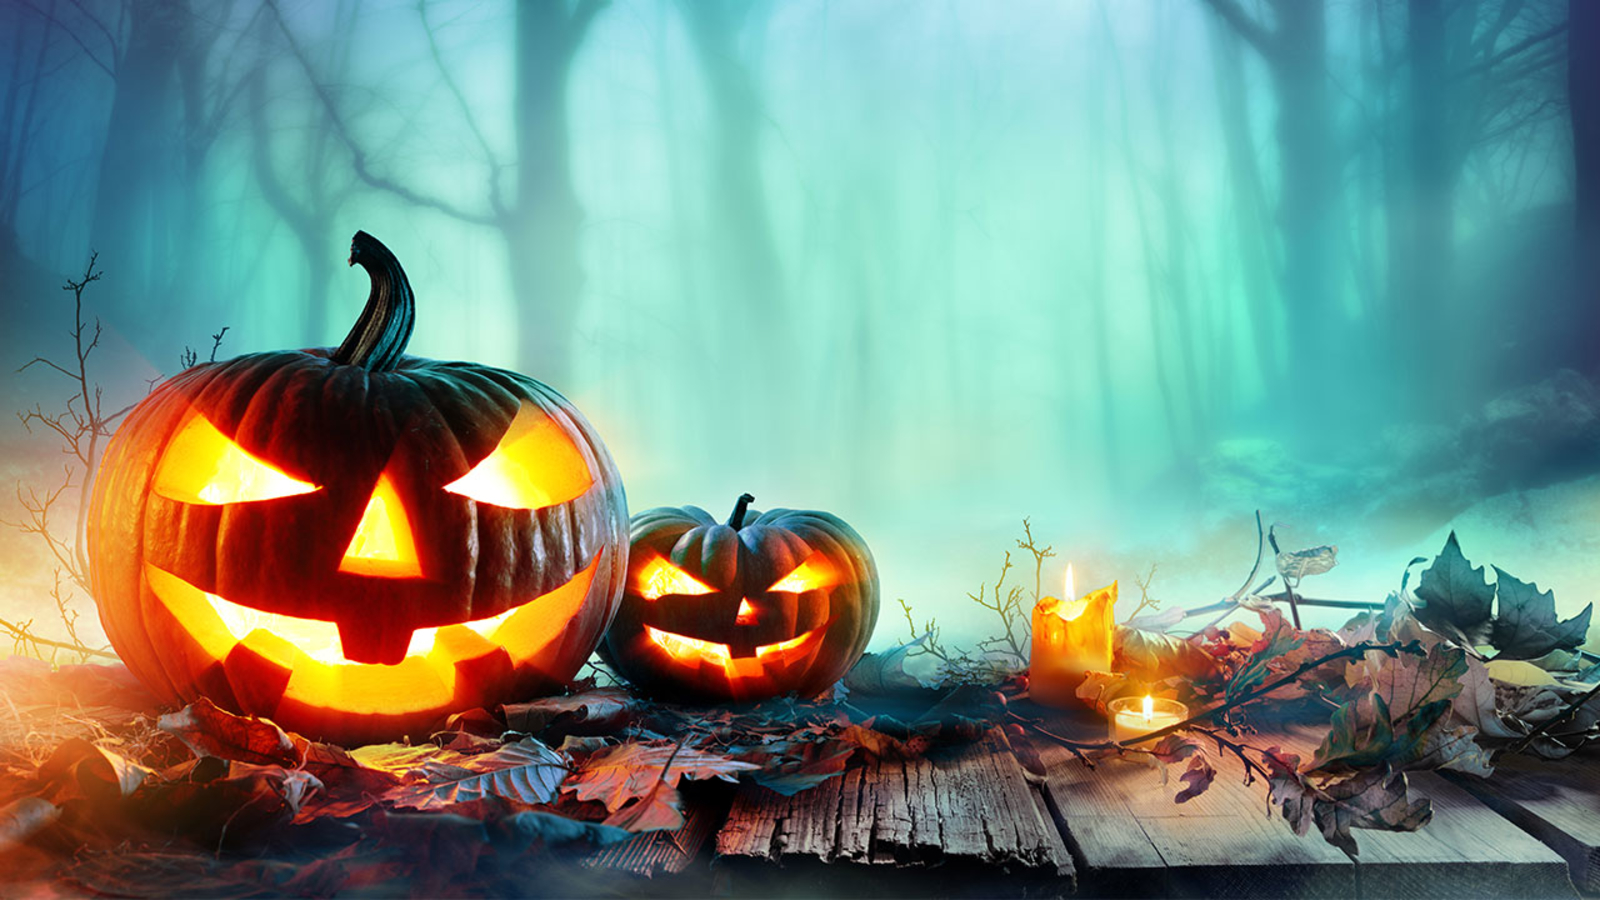 Halloween Events in Fresno, Kings, Madera, Mariposa, Merced, and Tulare  Counties - ABC30 Fresno